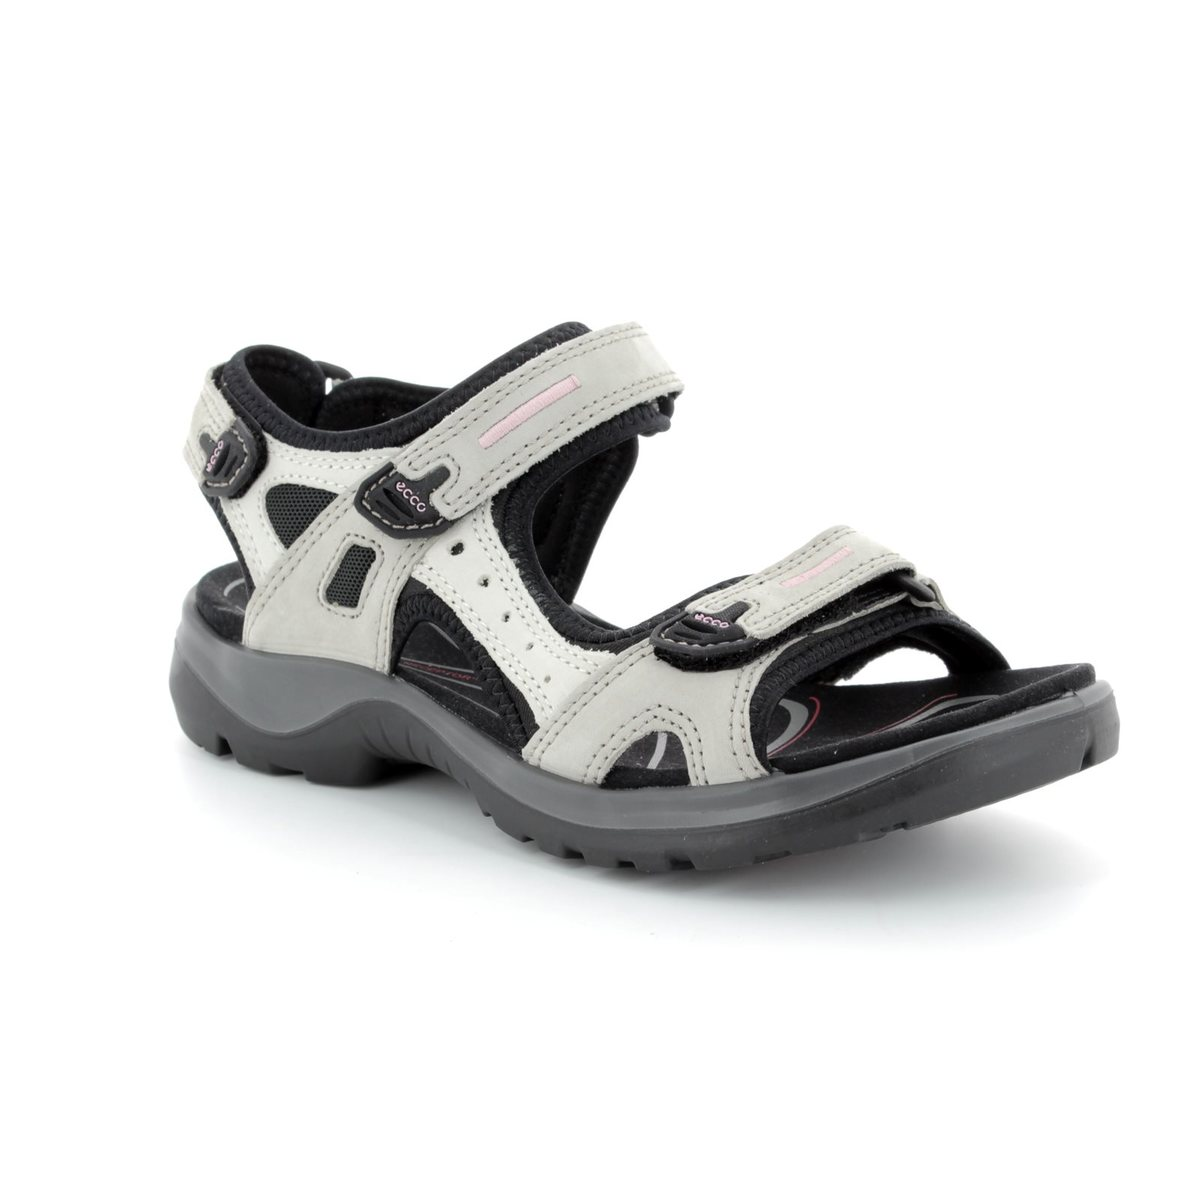 7512fd31a84c ECCO Offroad Lady 069563-54695 Light grey multi Walking Sandals